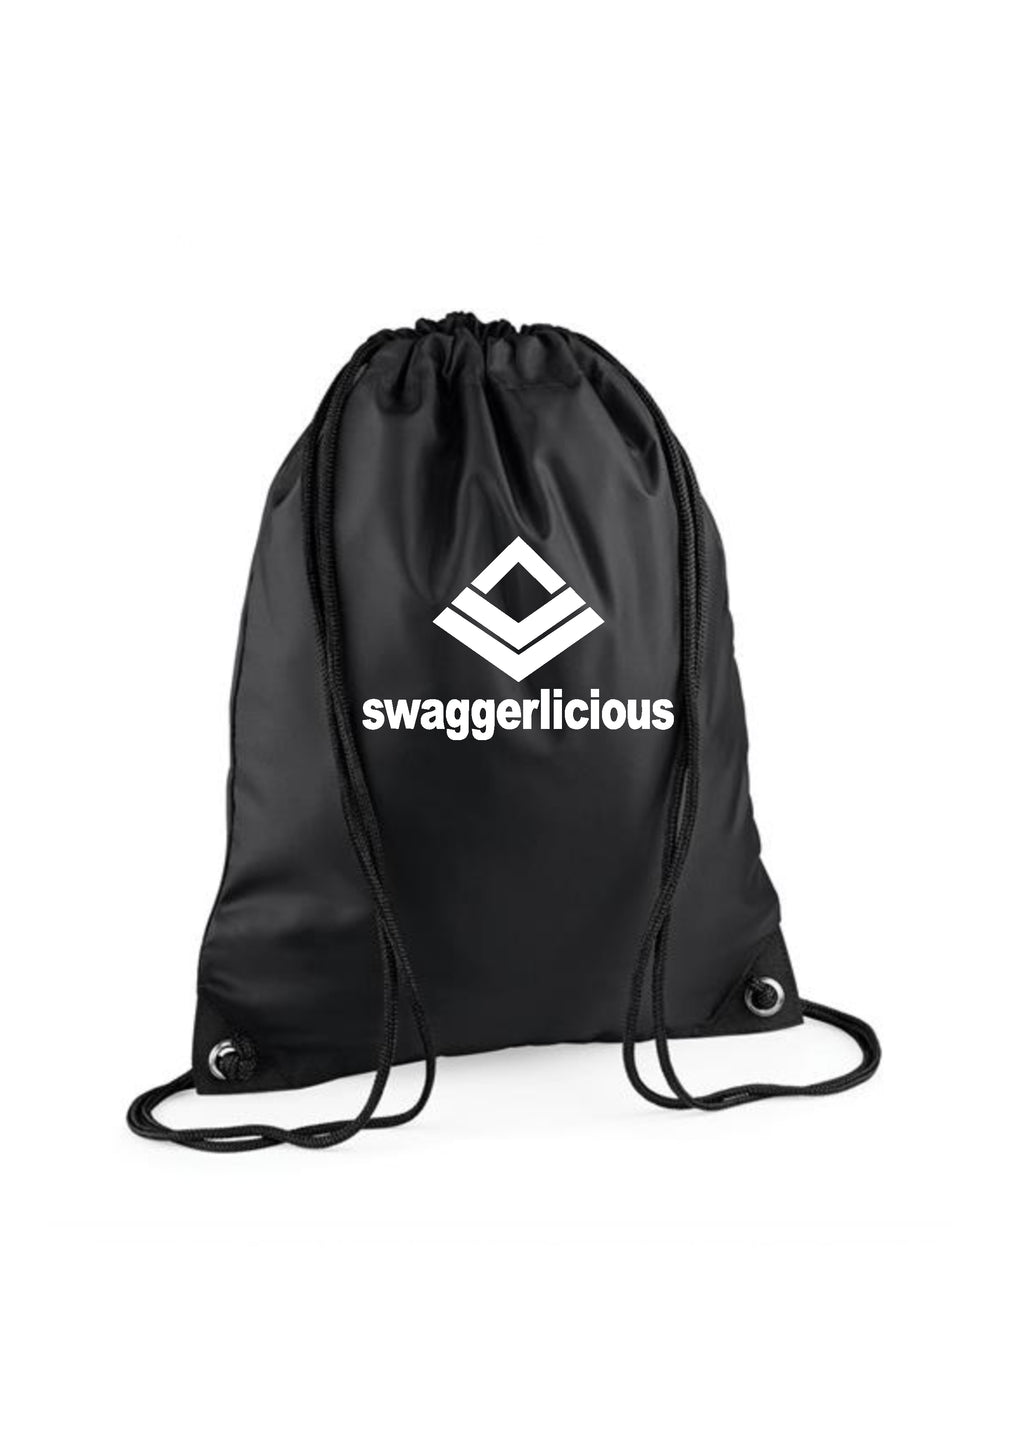 Swaggerlicious Black Gym Sack - swaggerlicious-clothing.com